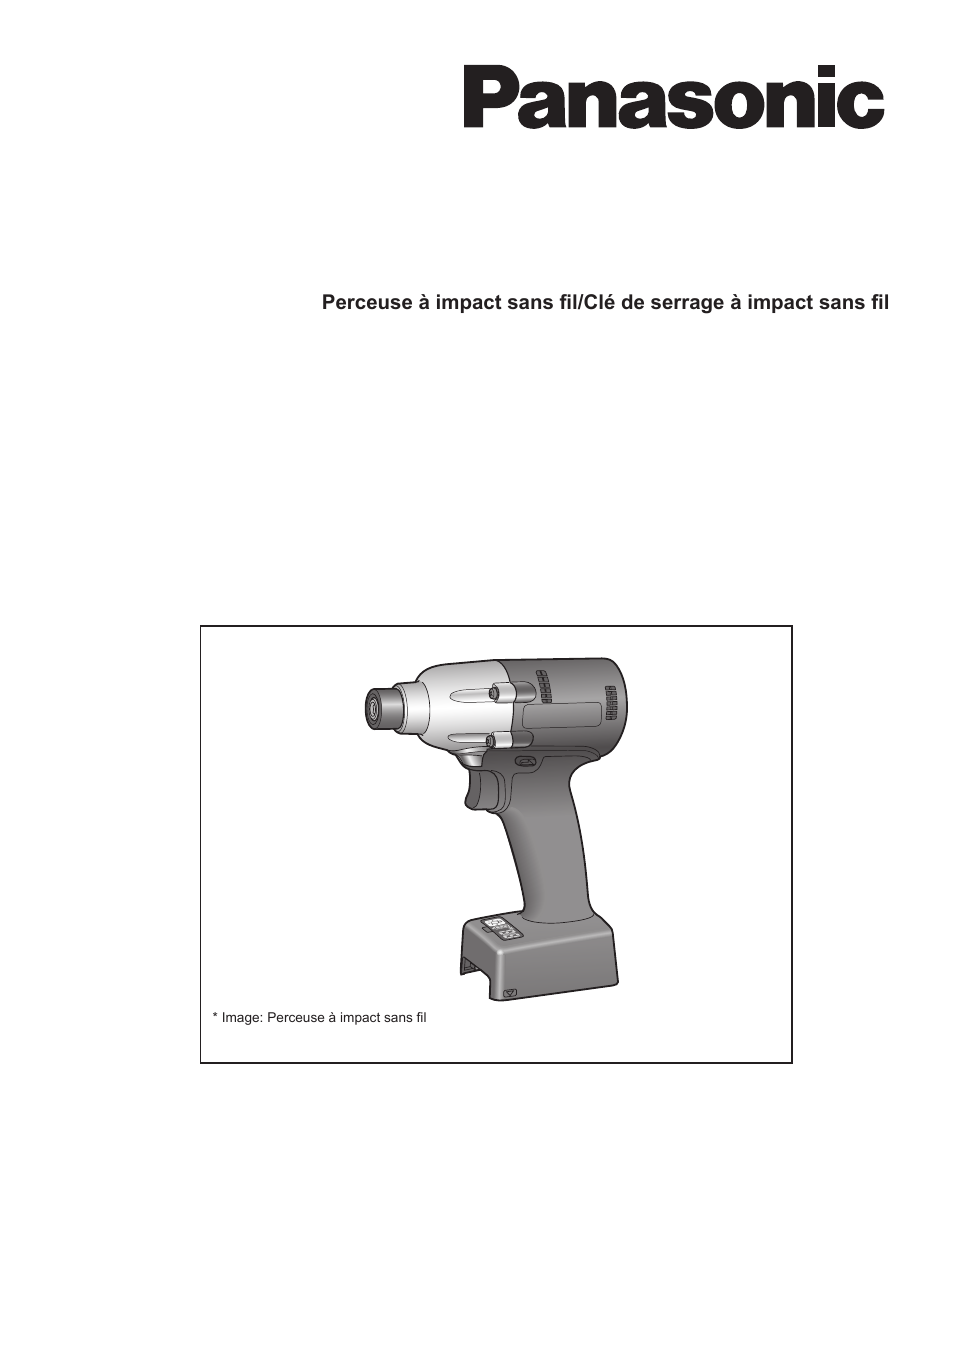 Panasonic EYFMA1J User Manual | 56 pages | Also for: EYFLA6J